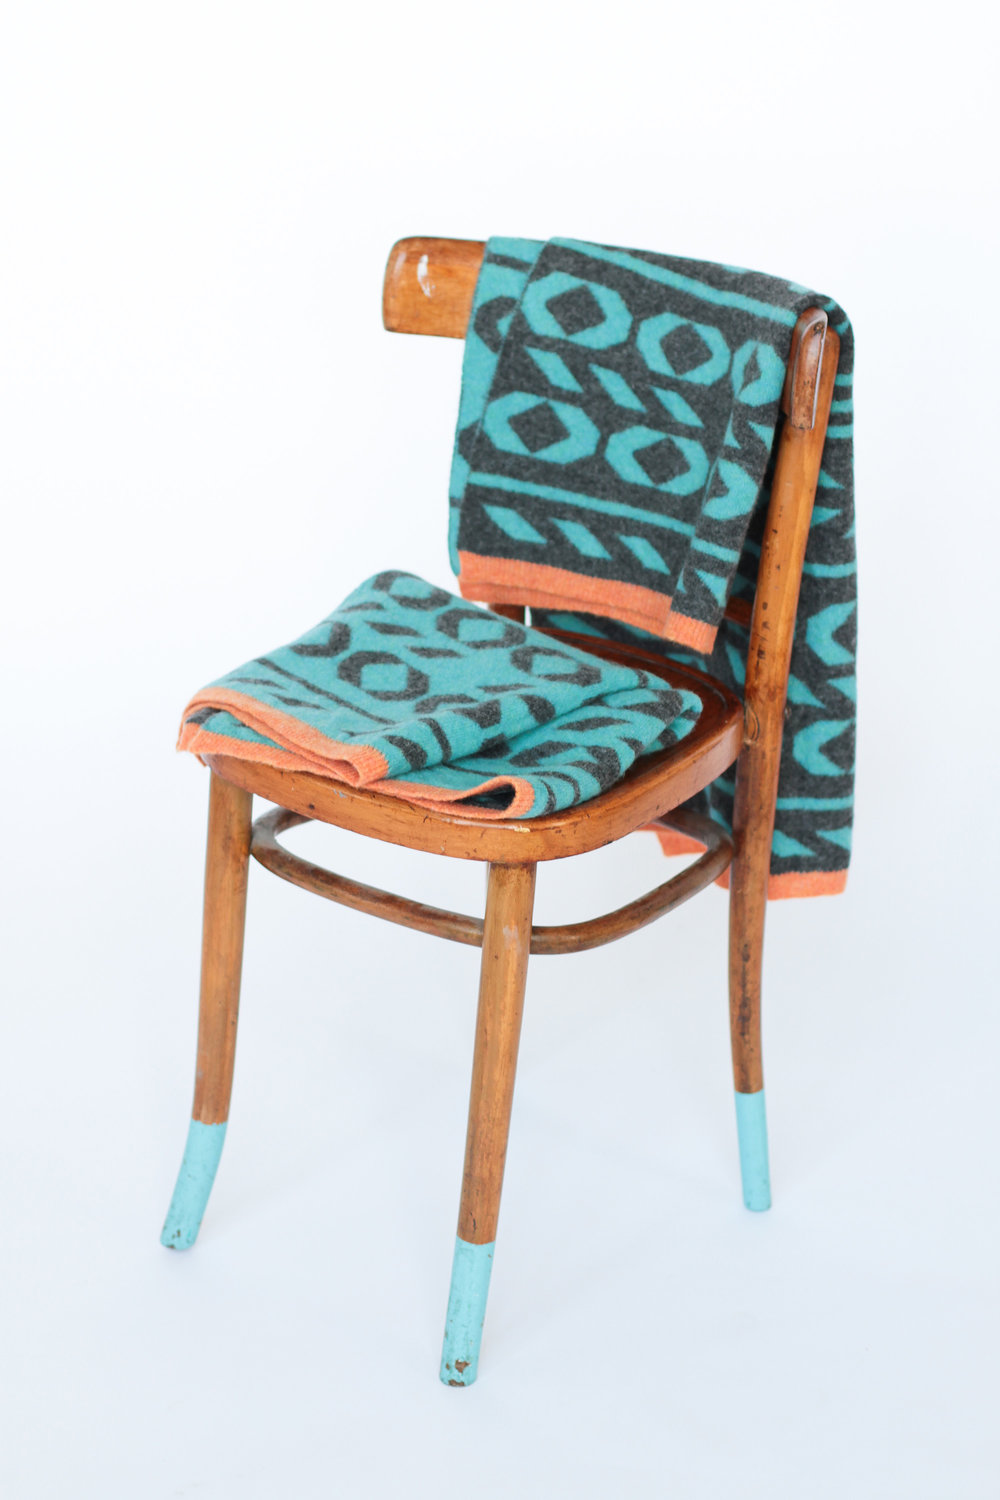 HN-Product-Blanket-009.jpg